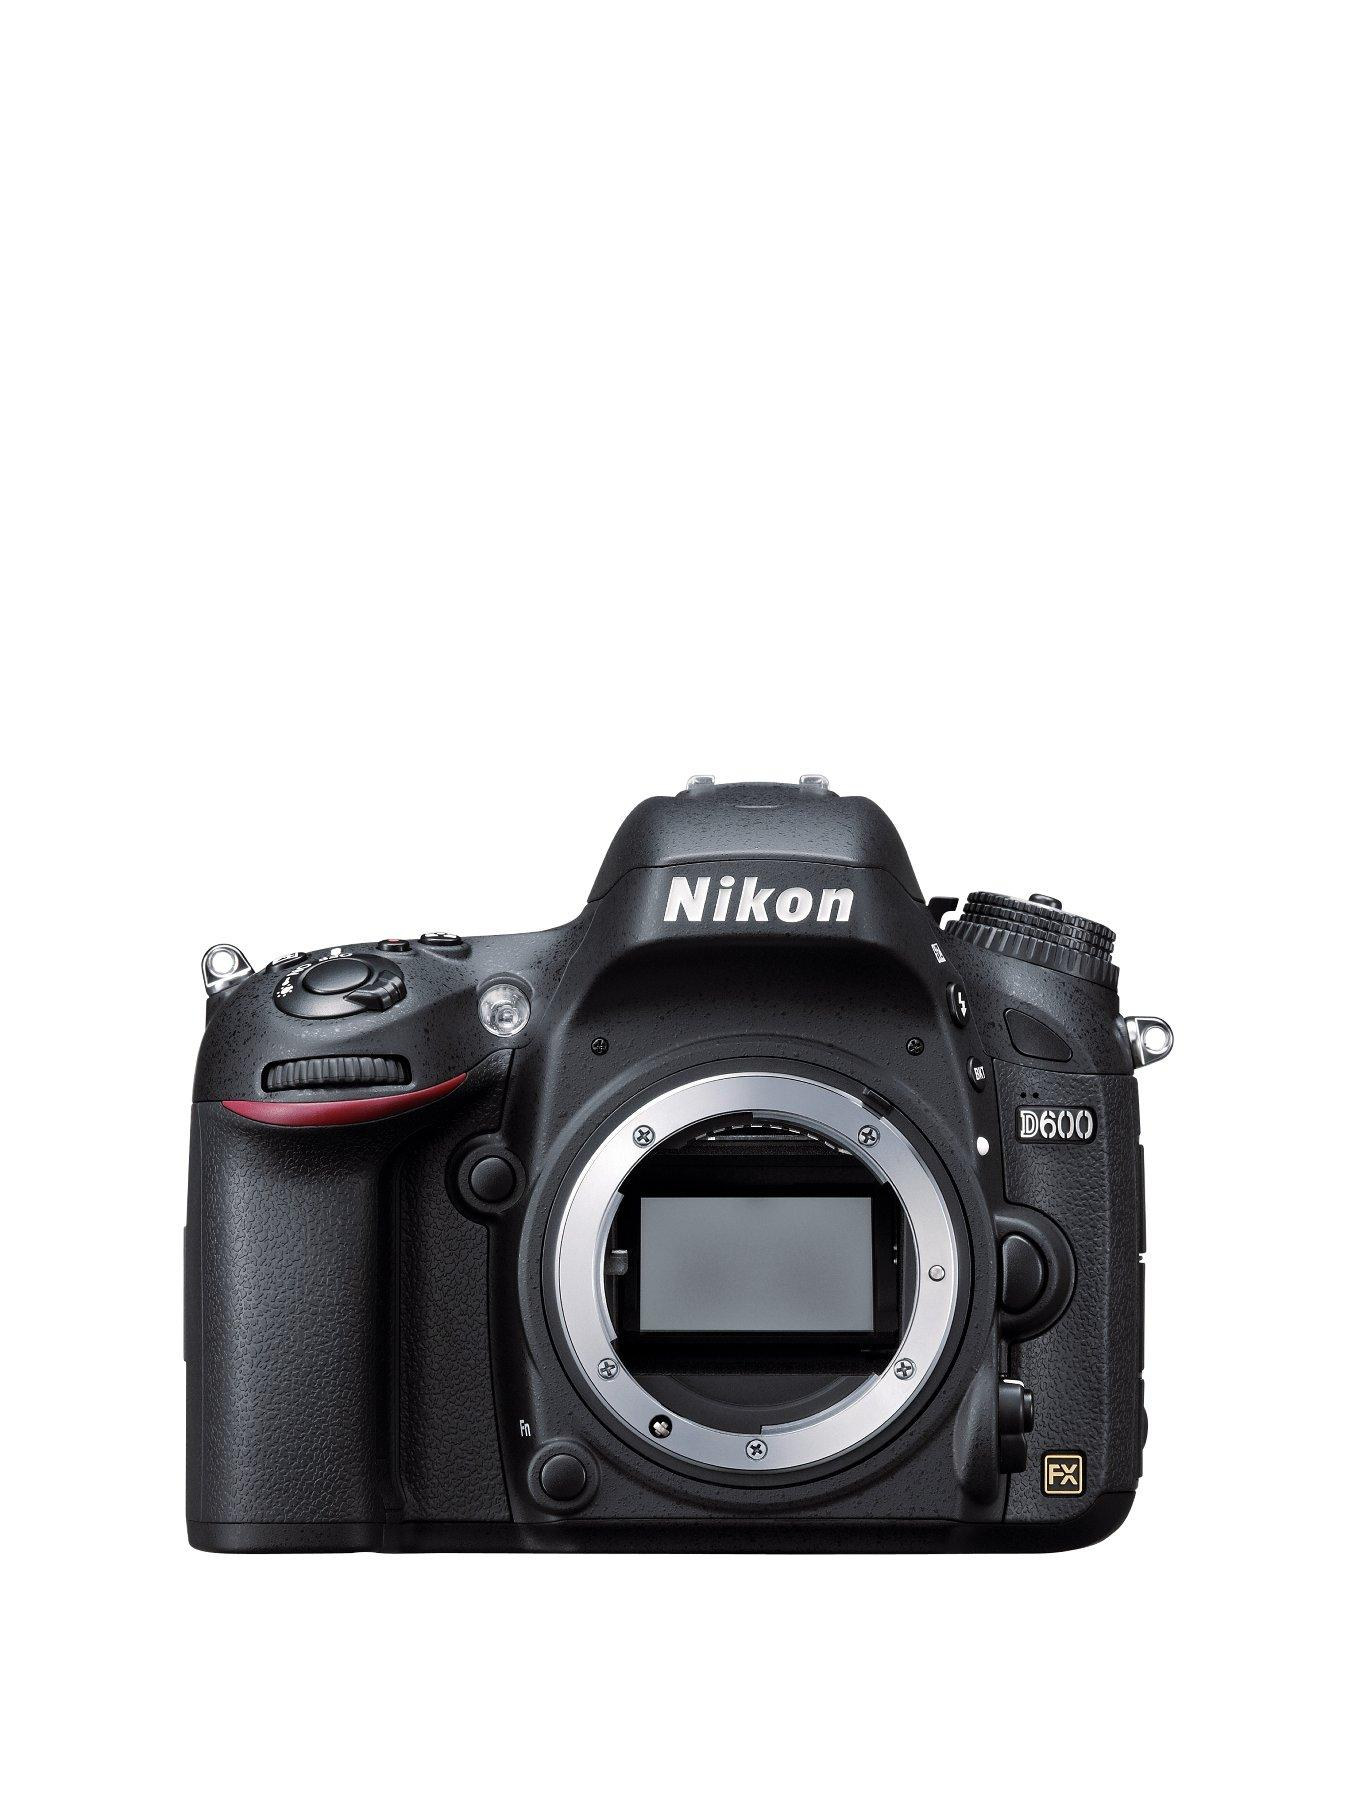 Nikon D600 SLR Camera Body Only 24 Megapixel, 3.2 inch LCD FHD